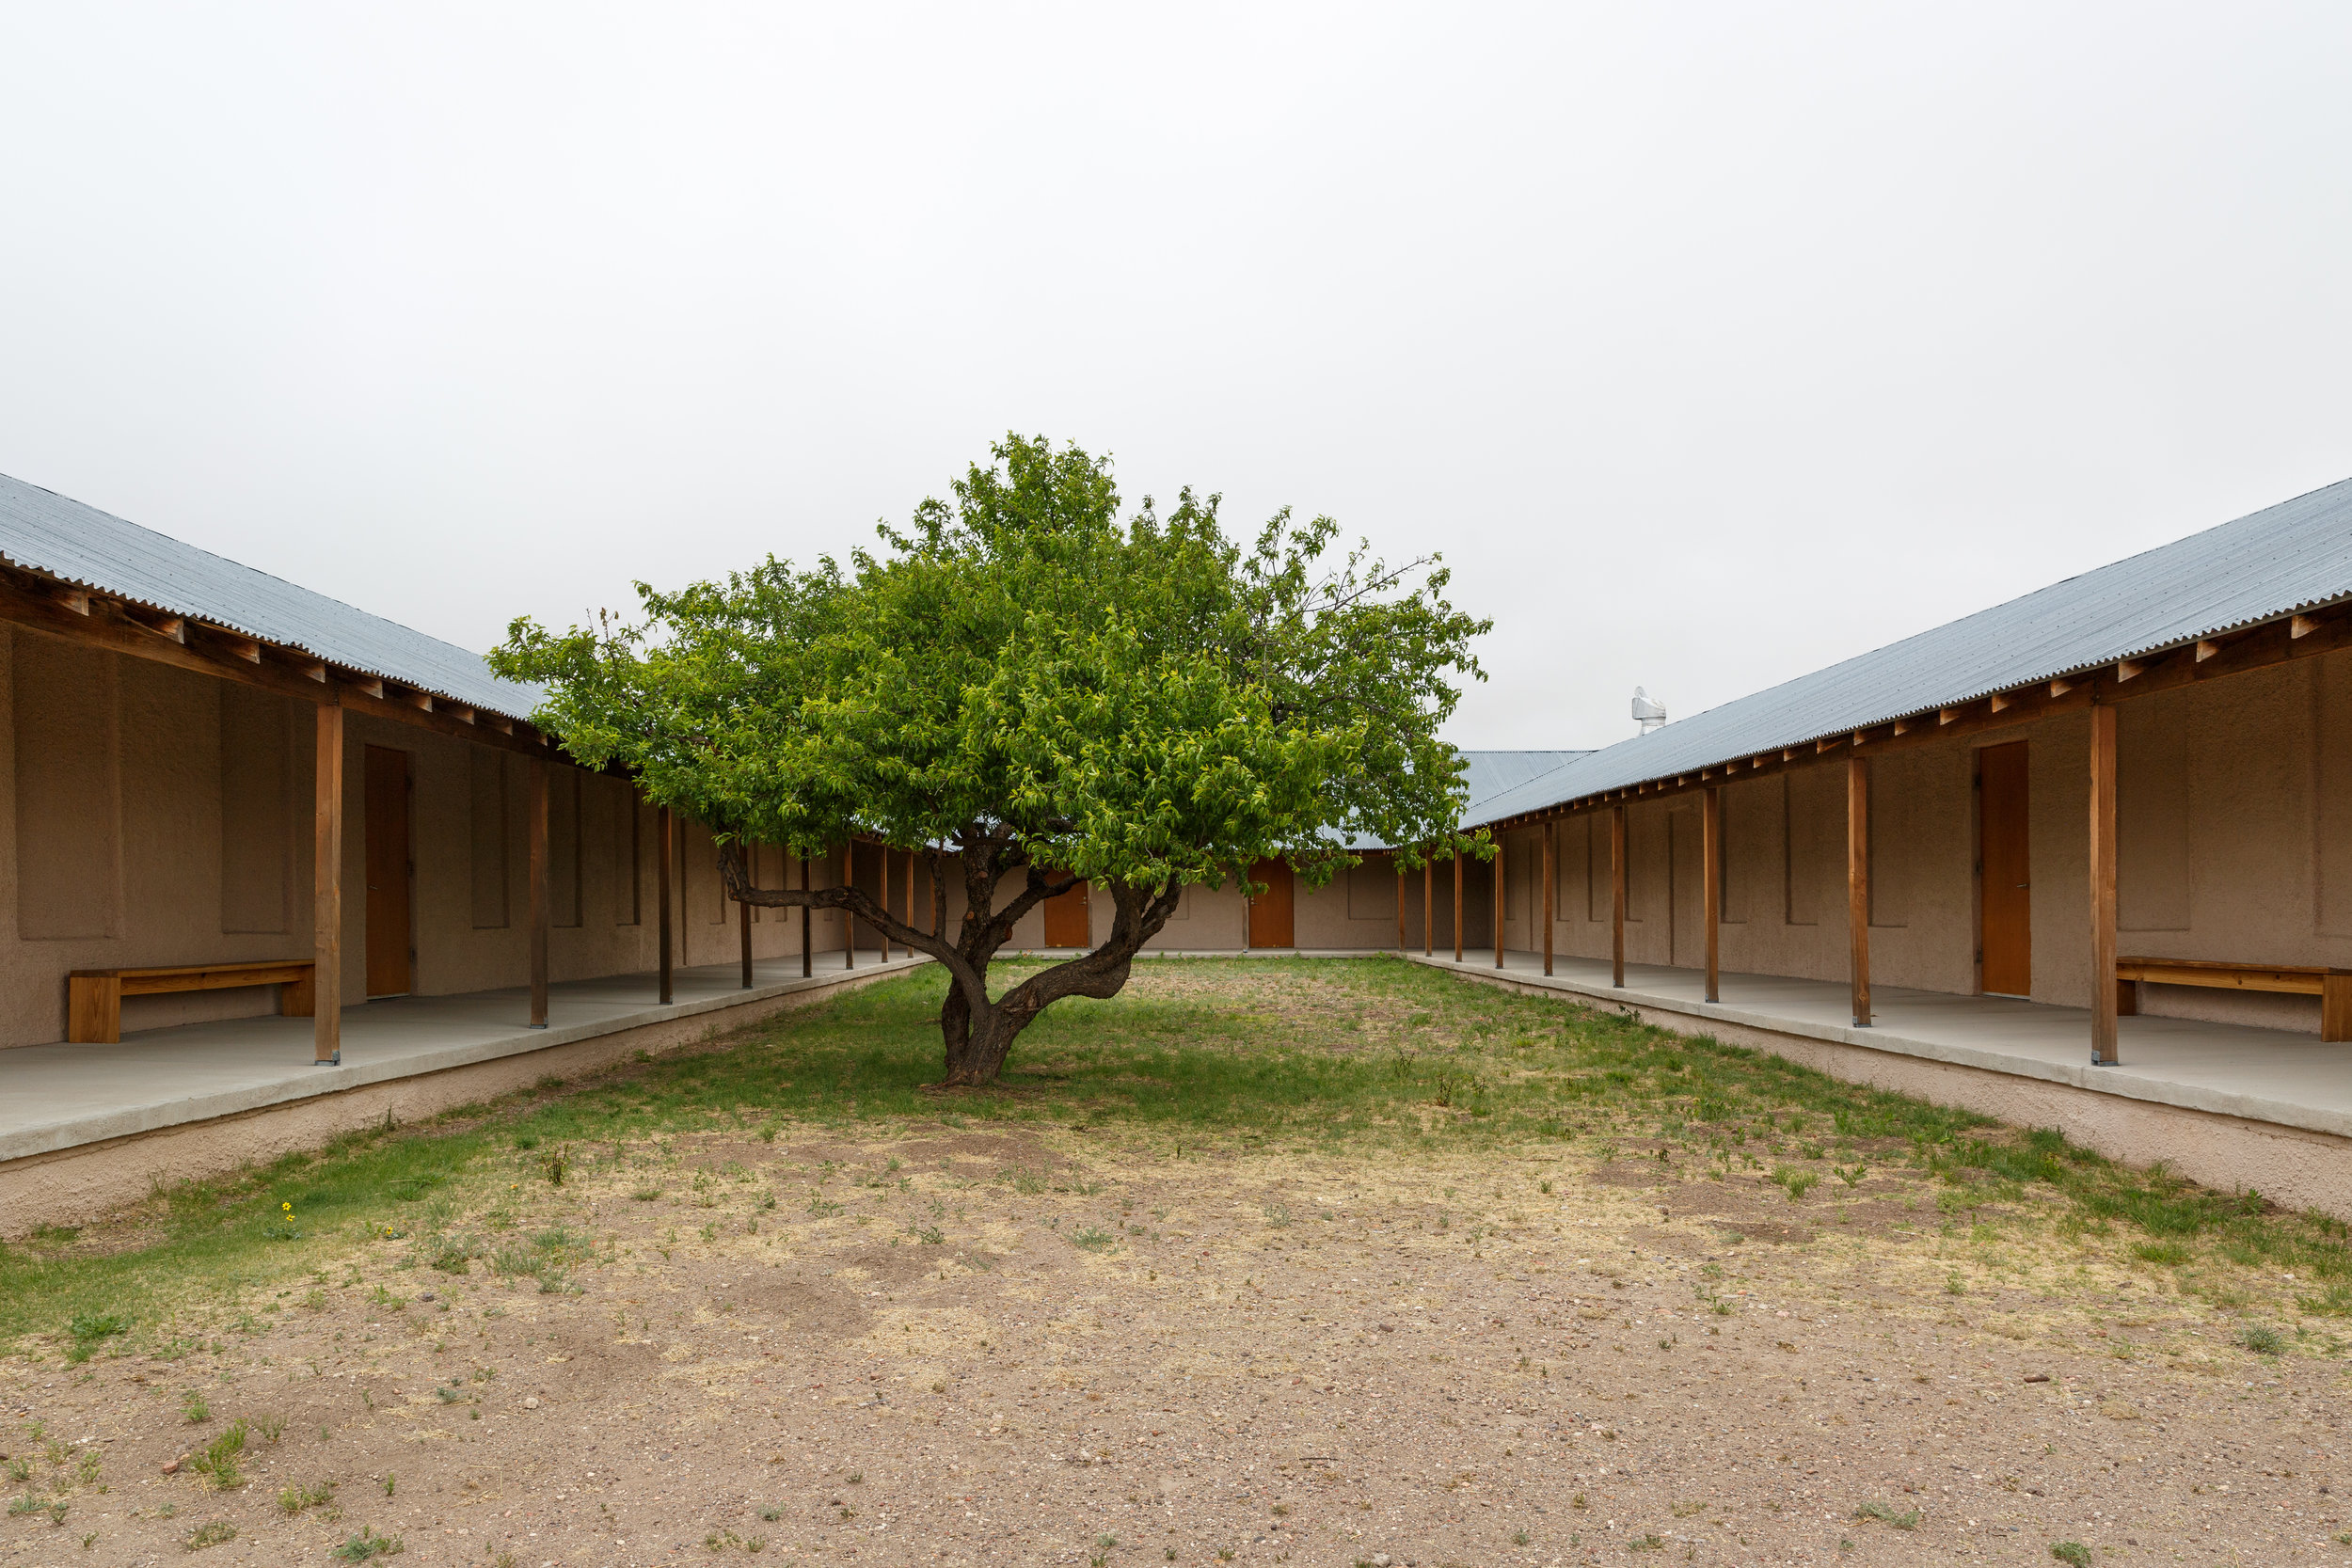 The courtyard of one of the barracks buildings complete with an artfully placed tree